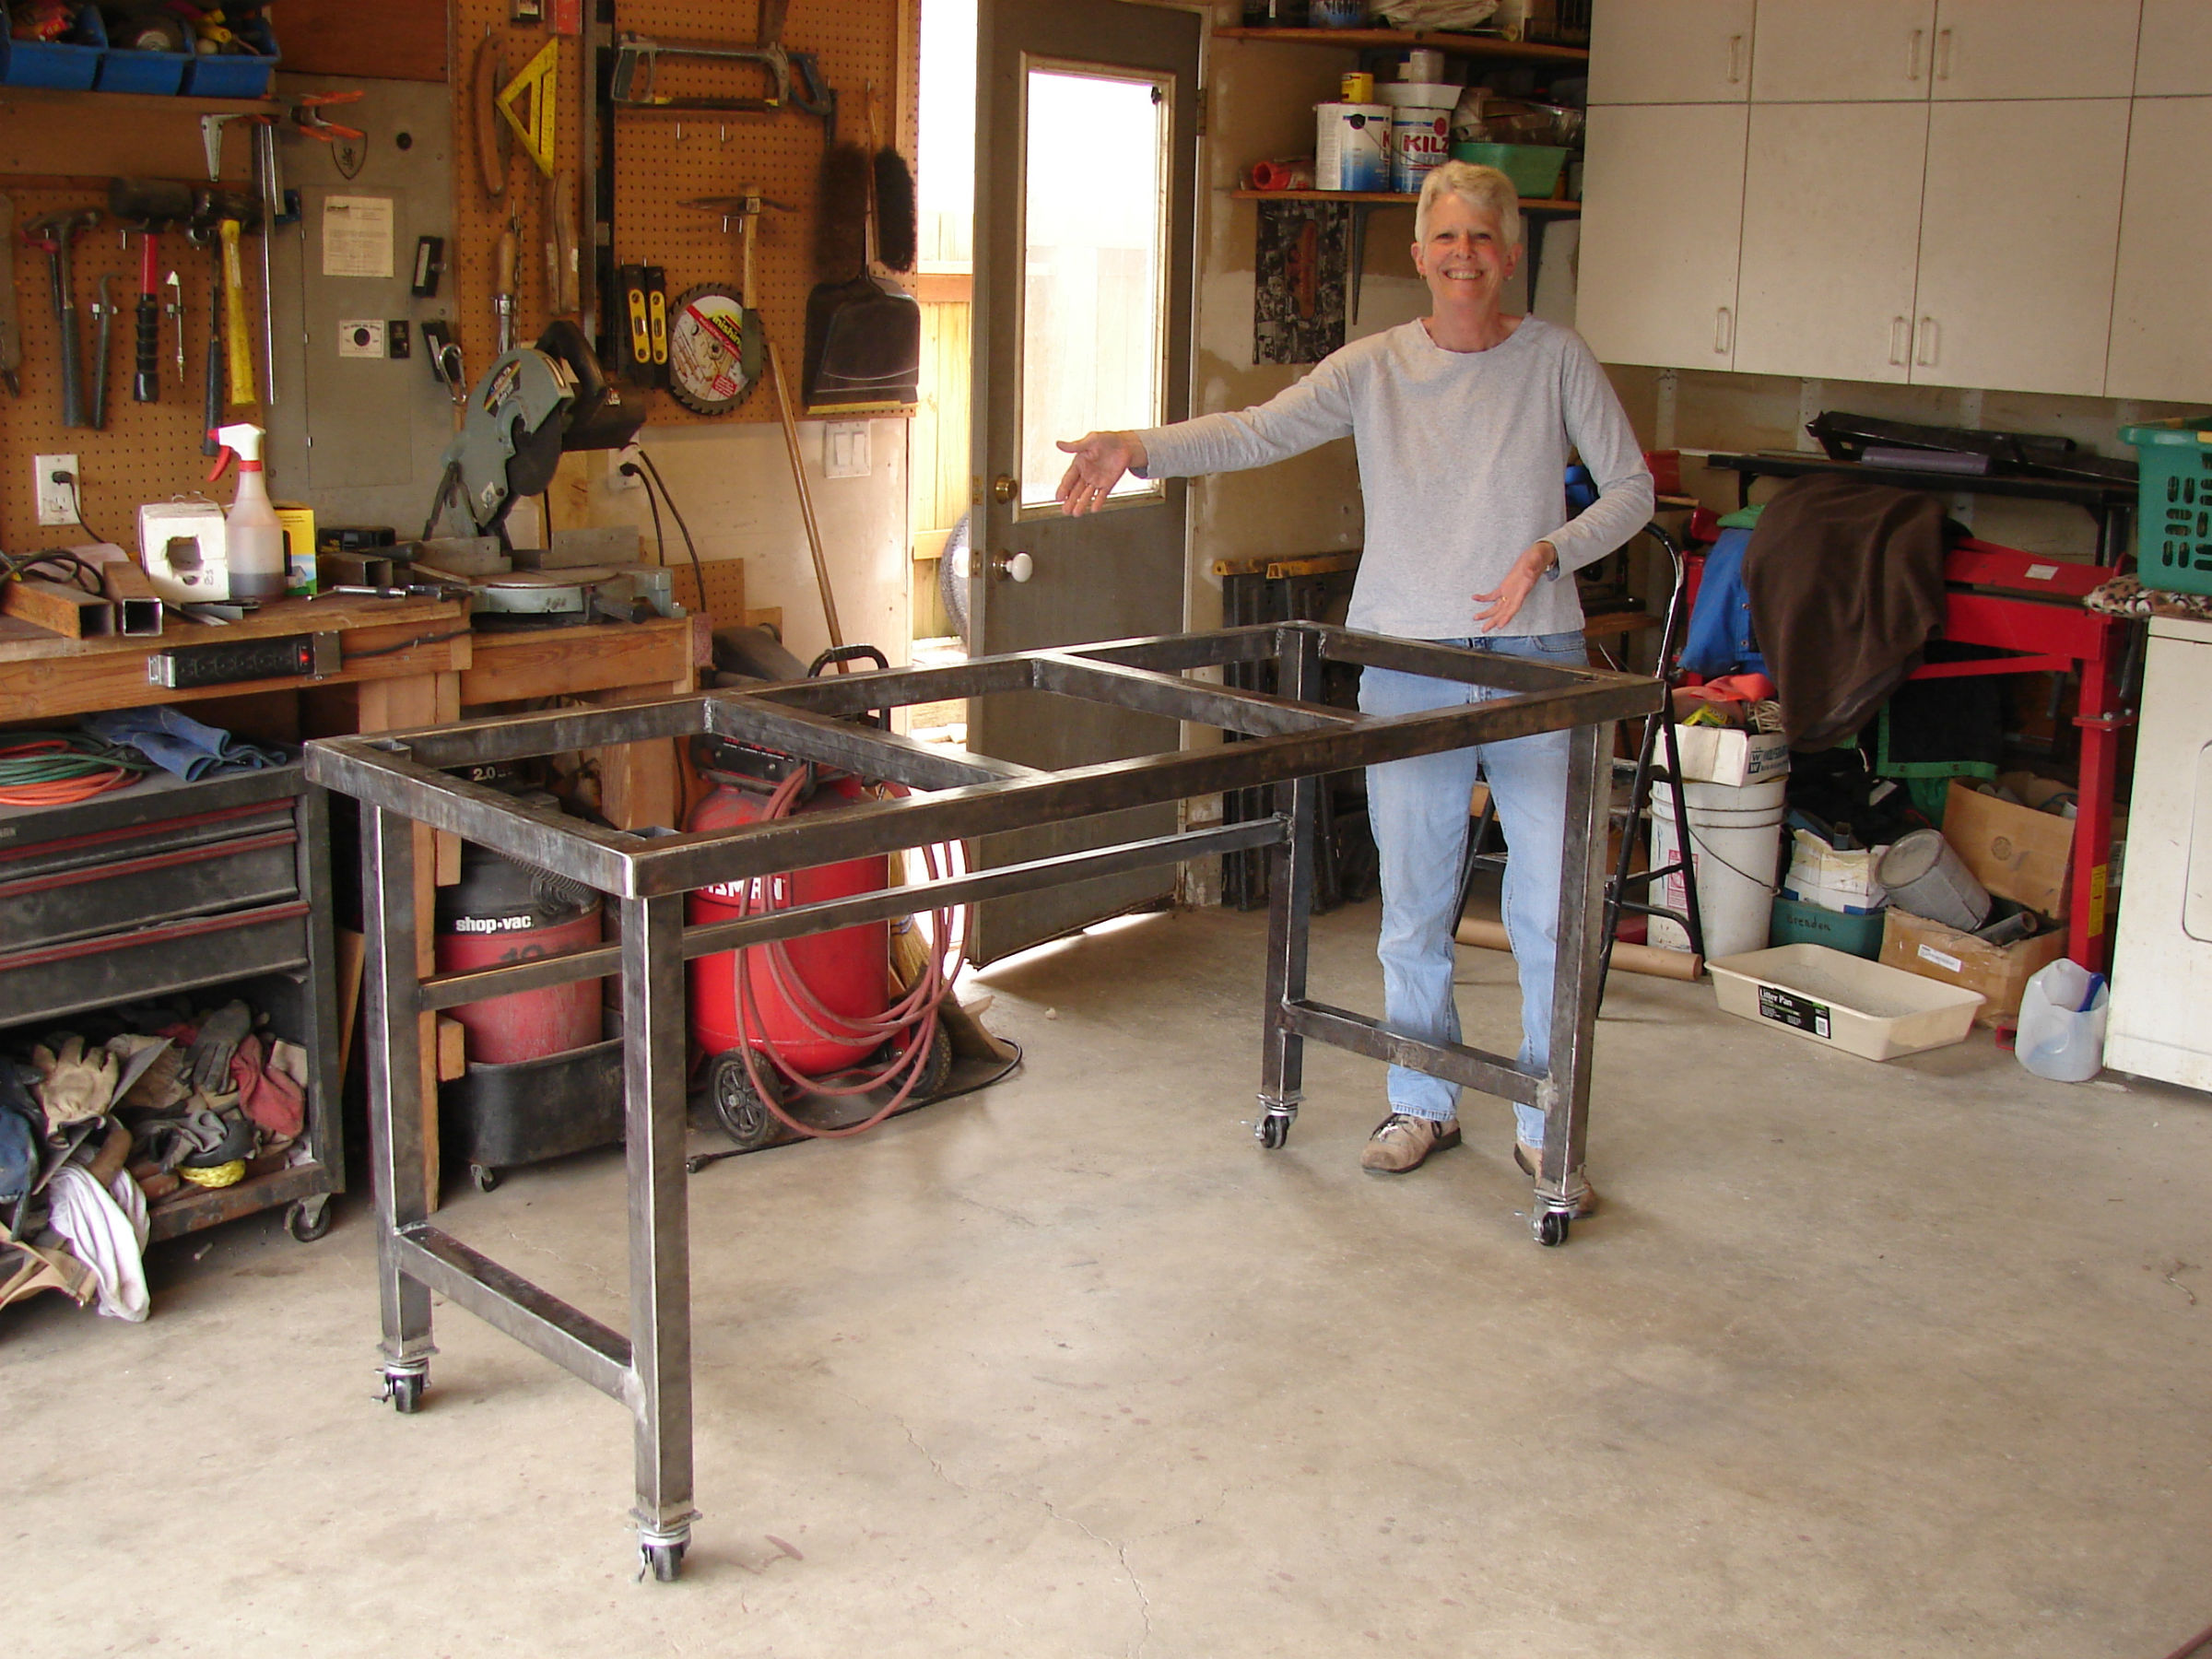 Click image for larger version  Name:workbench donna.jpg Views:238 Size:670.9 KB ID:56302